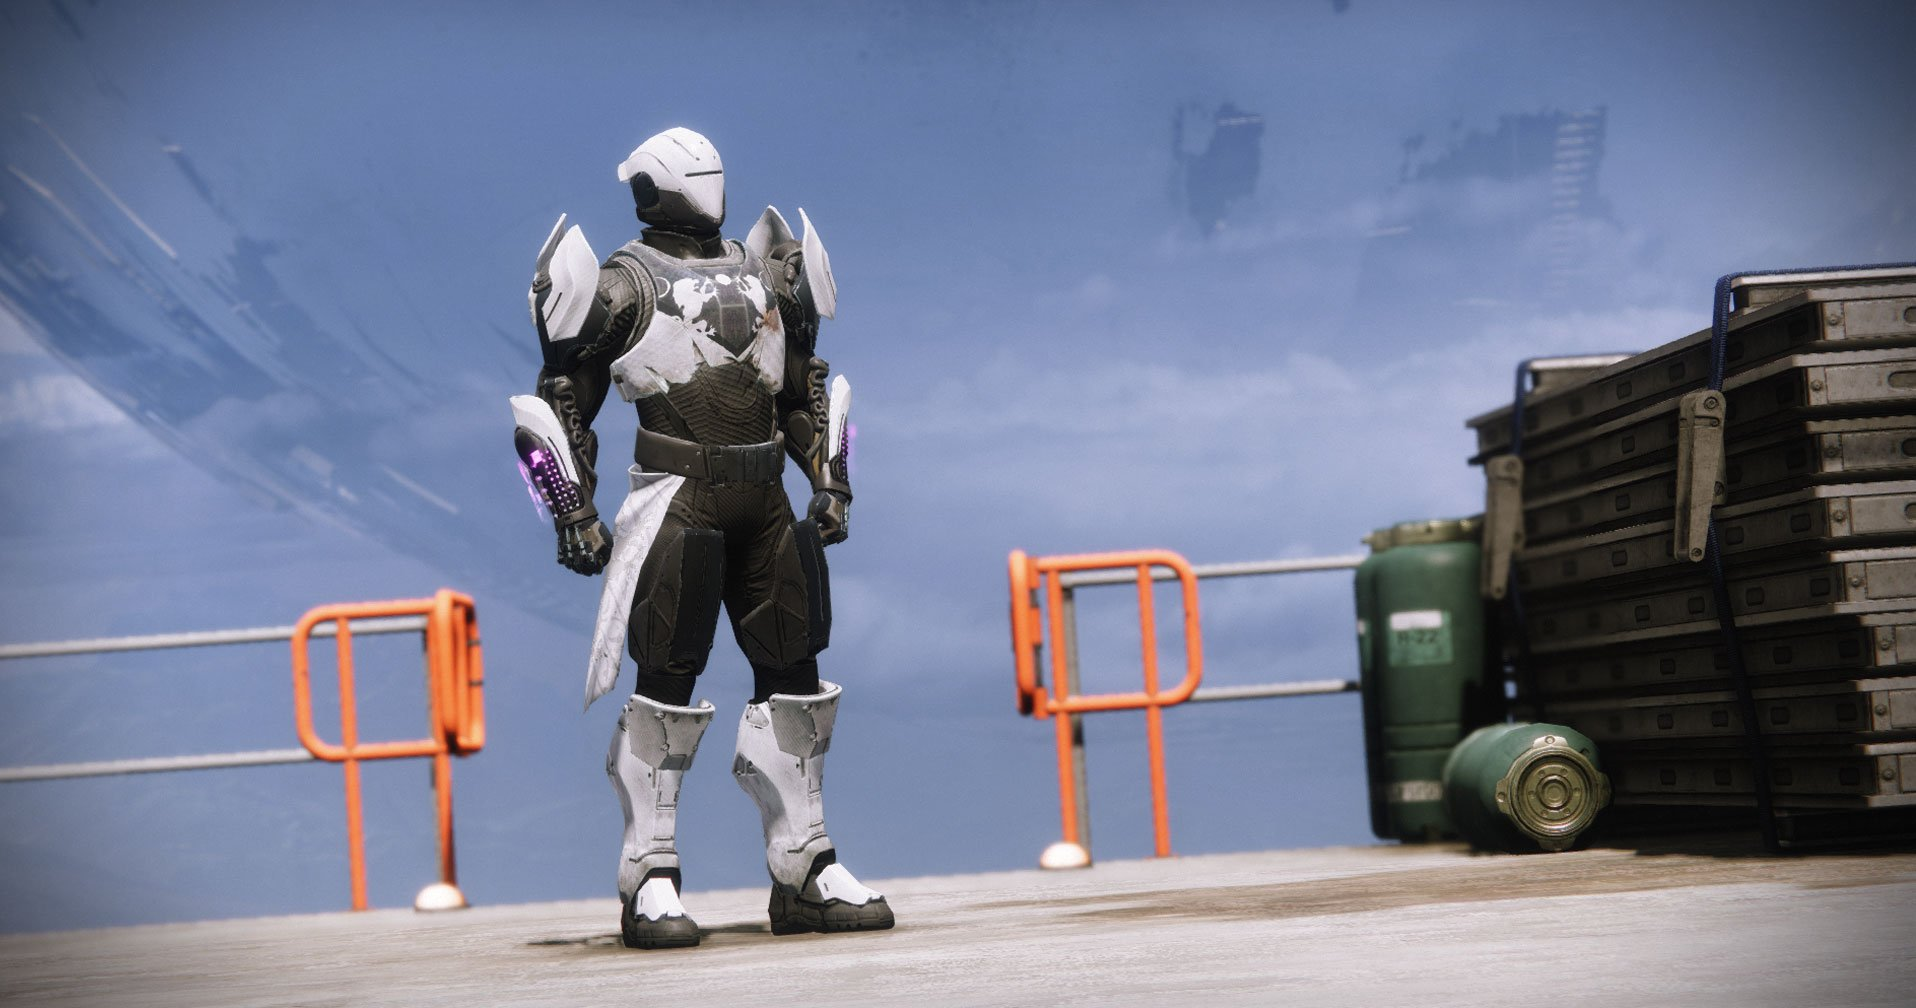 Of course Bungie is making Destiny 2 transmog a grindy chore with microtransaction shortcuts screenshot